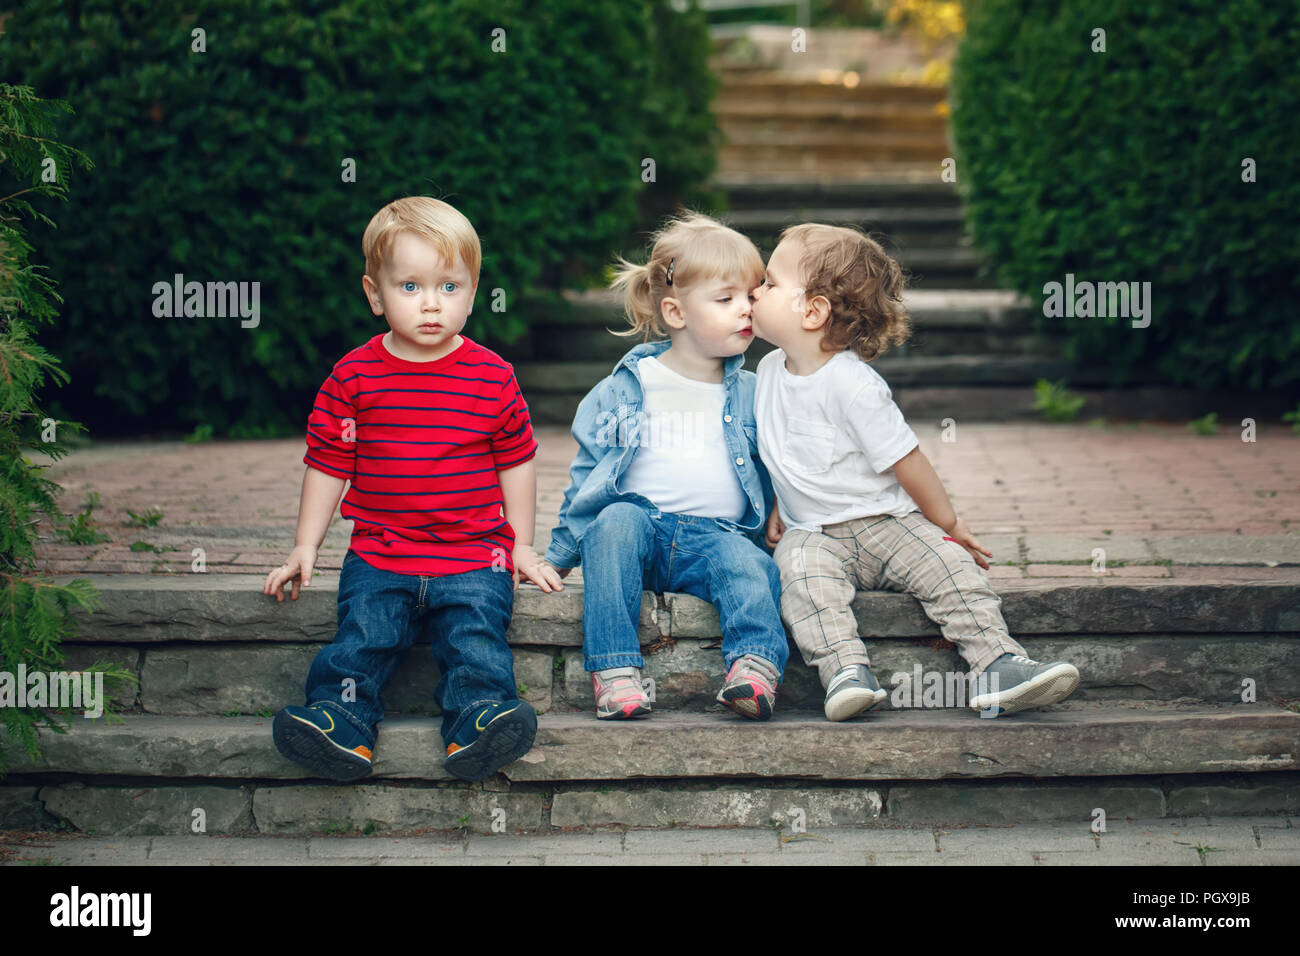 Little Boy And Girl Kissing Stock Photos  Little Boy And -4026